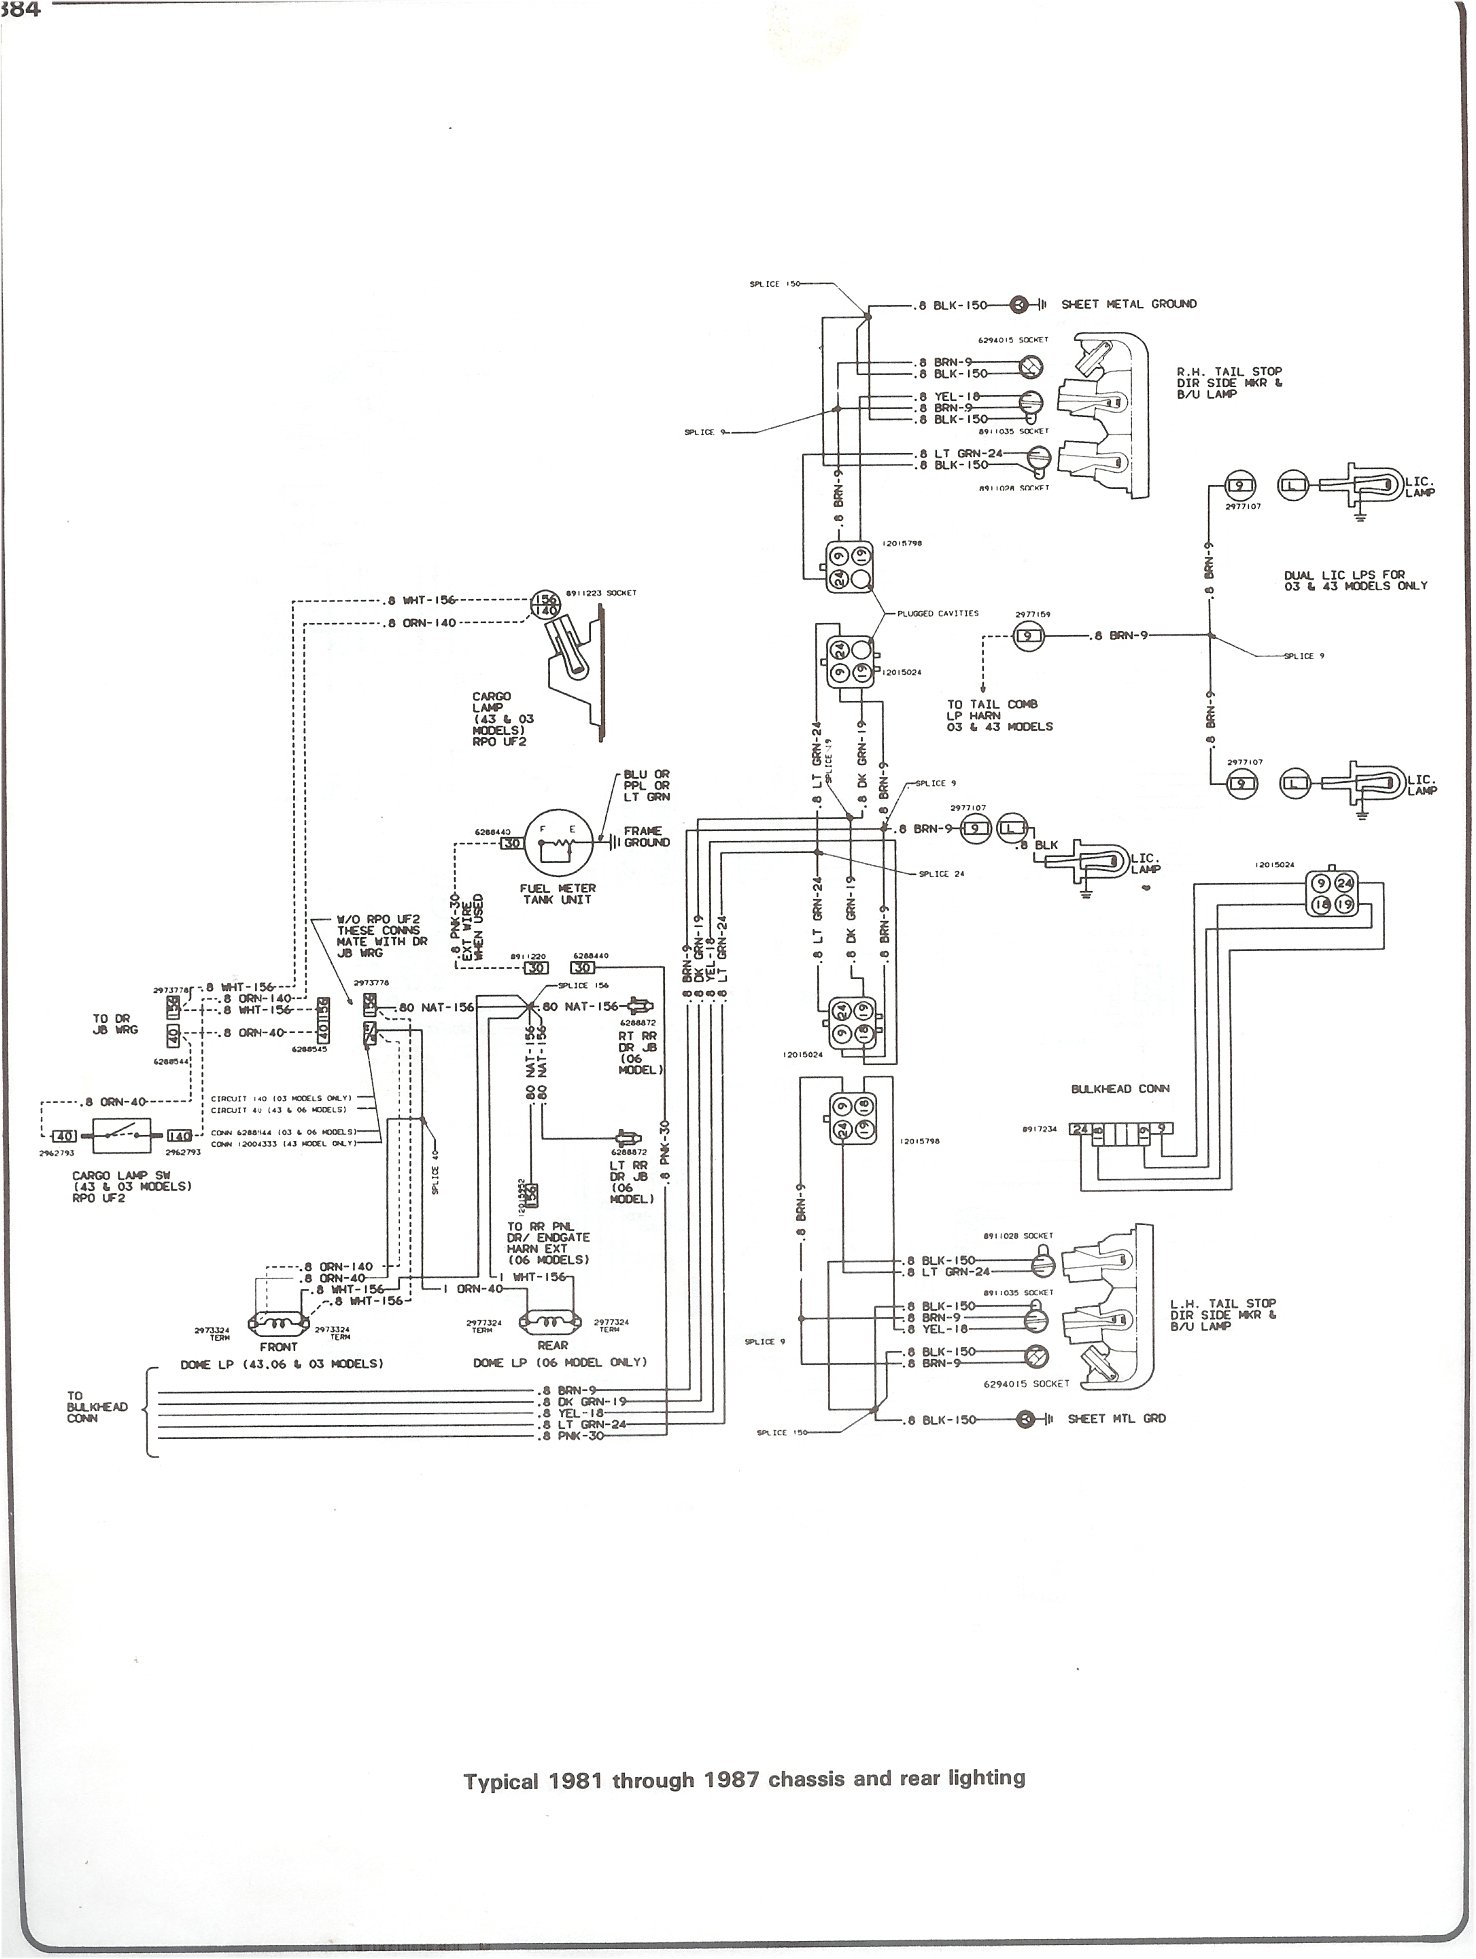 81 87_chass_rr_light complete 73 87 wiring diagrams 1992 Chevy 1500 Sensor Diagram at virtualis.co